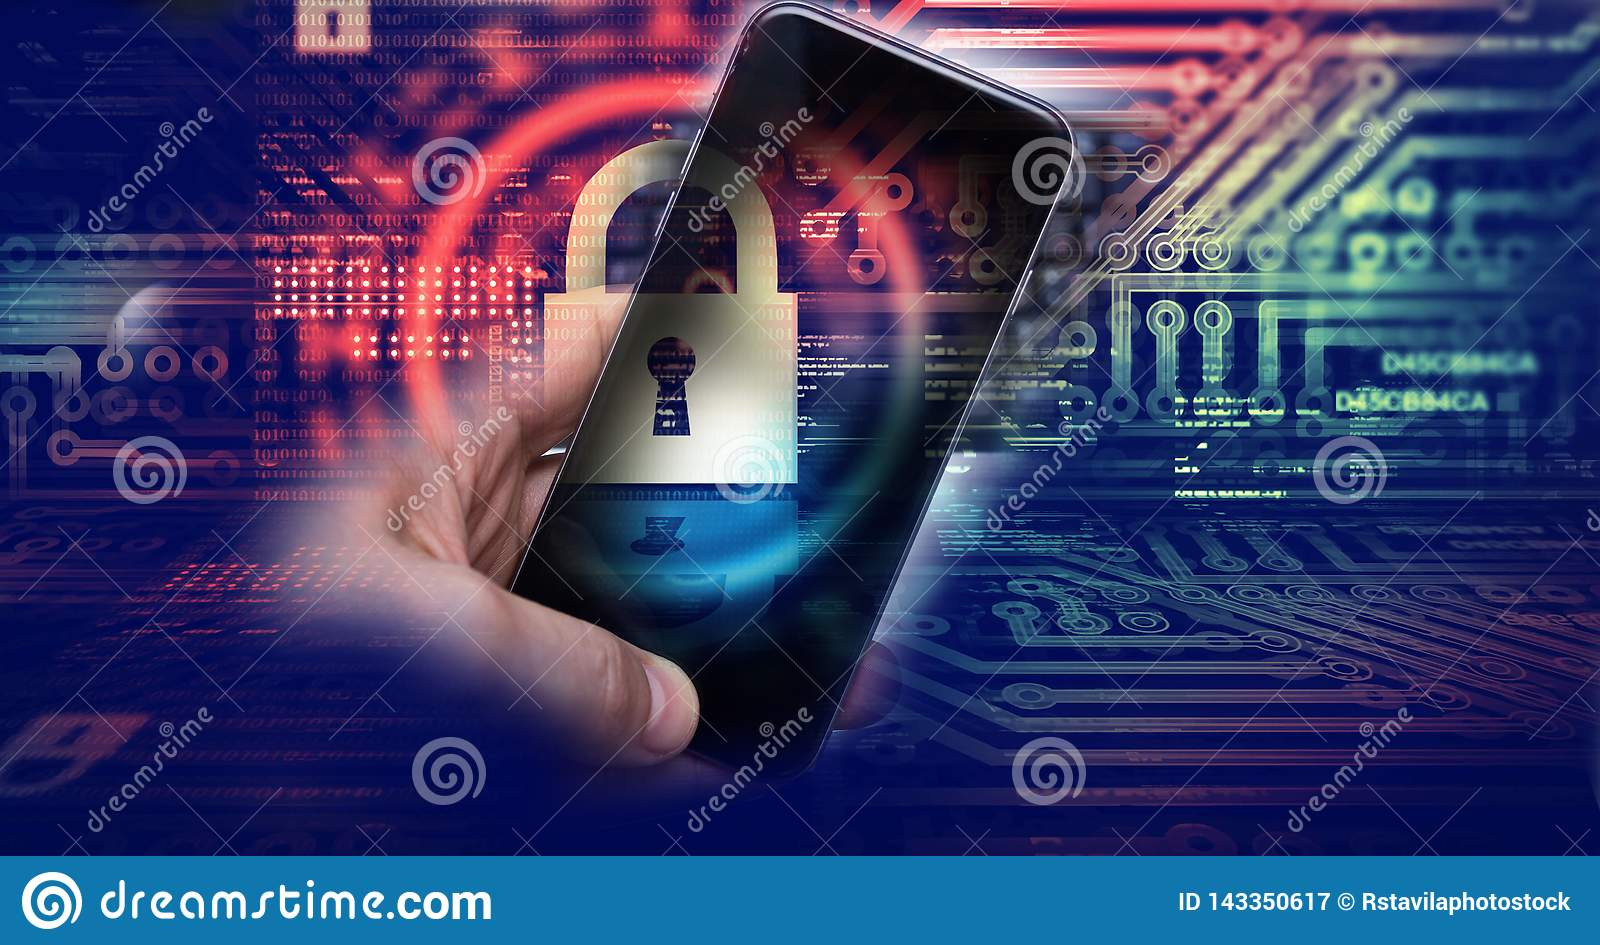 Hacking mobile devices by hackers. Data protection in the cloud